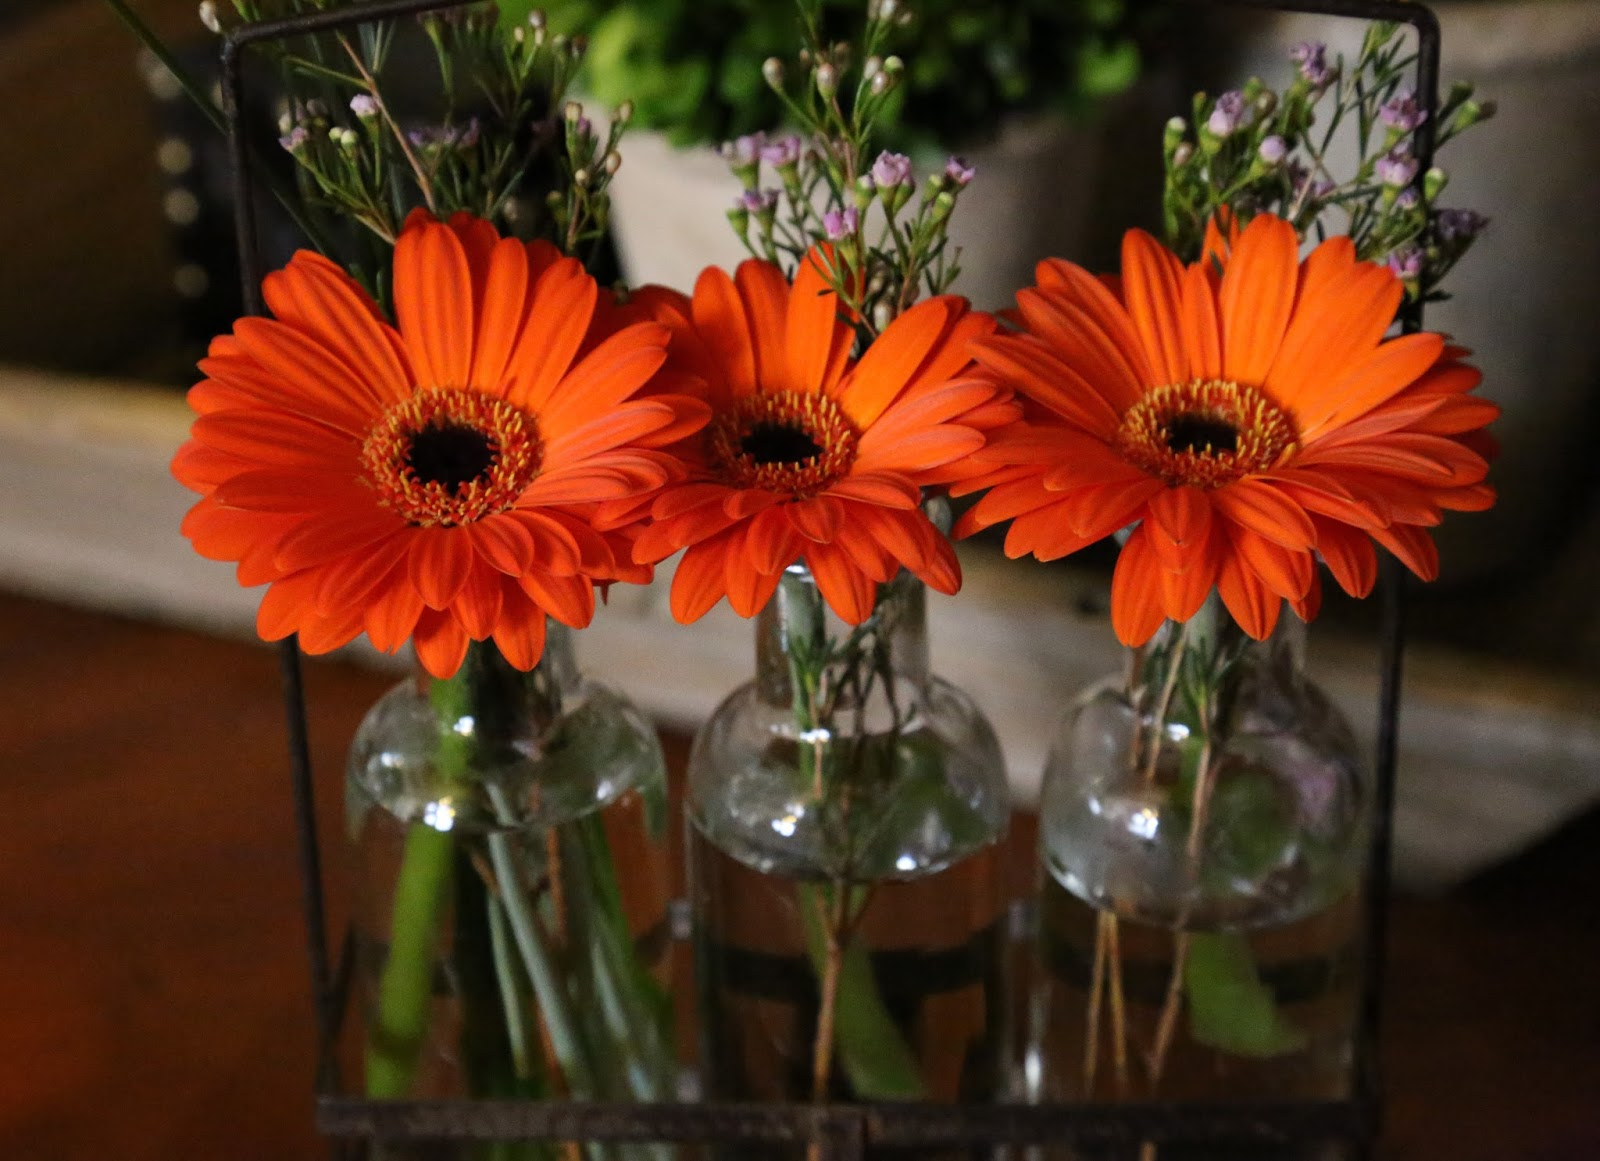 Decorated mantel easy floral arrangement to make for the weekend and quick way to brighten and freshen any room and you can enjoy them over the weekend were still enjoying this arrangement with gerbera daisies reviewsmspy